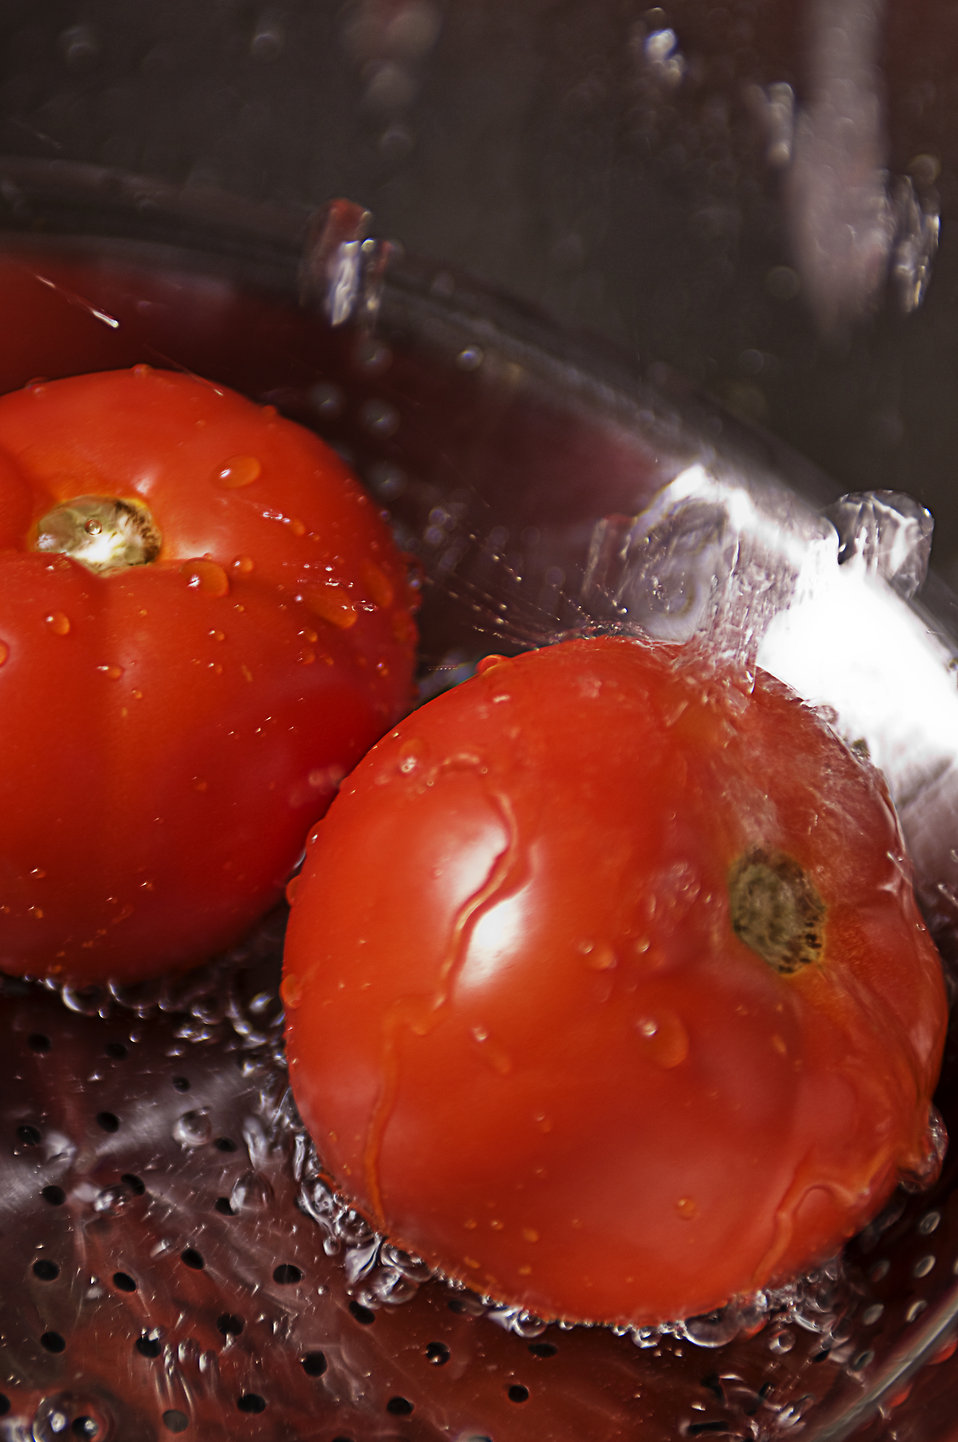 Two fresh tomatoes being washed under running water : Free Stock Photo